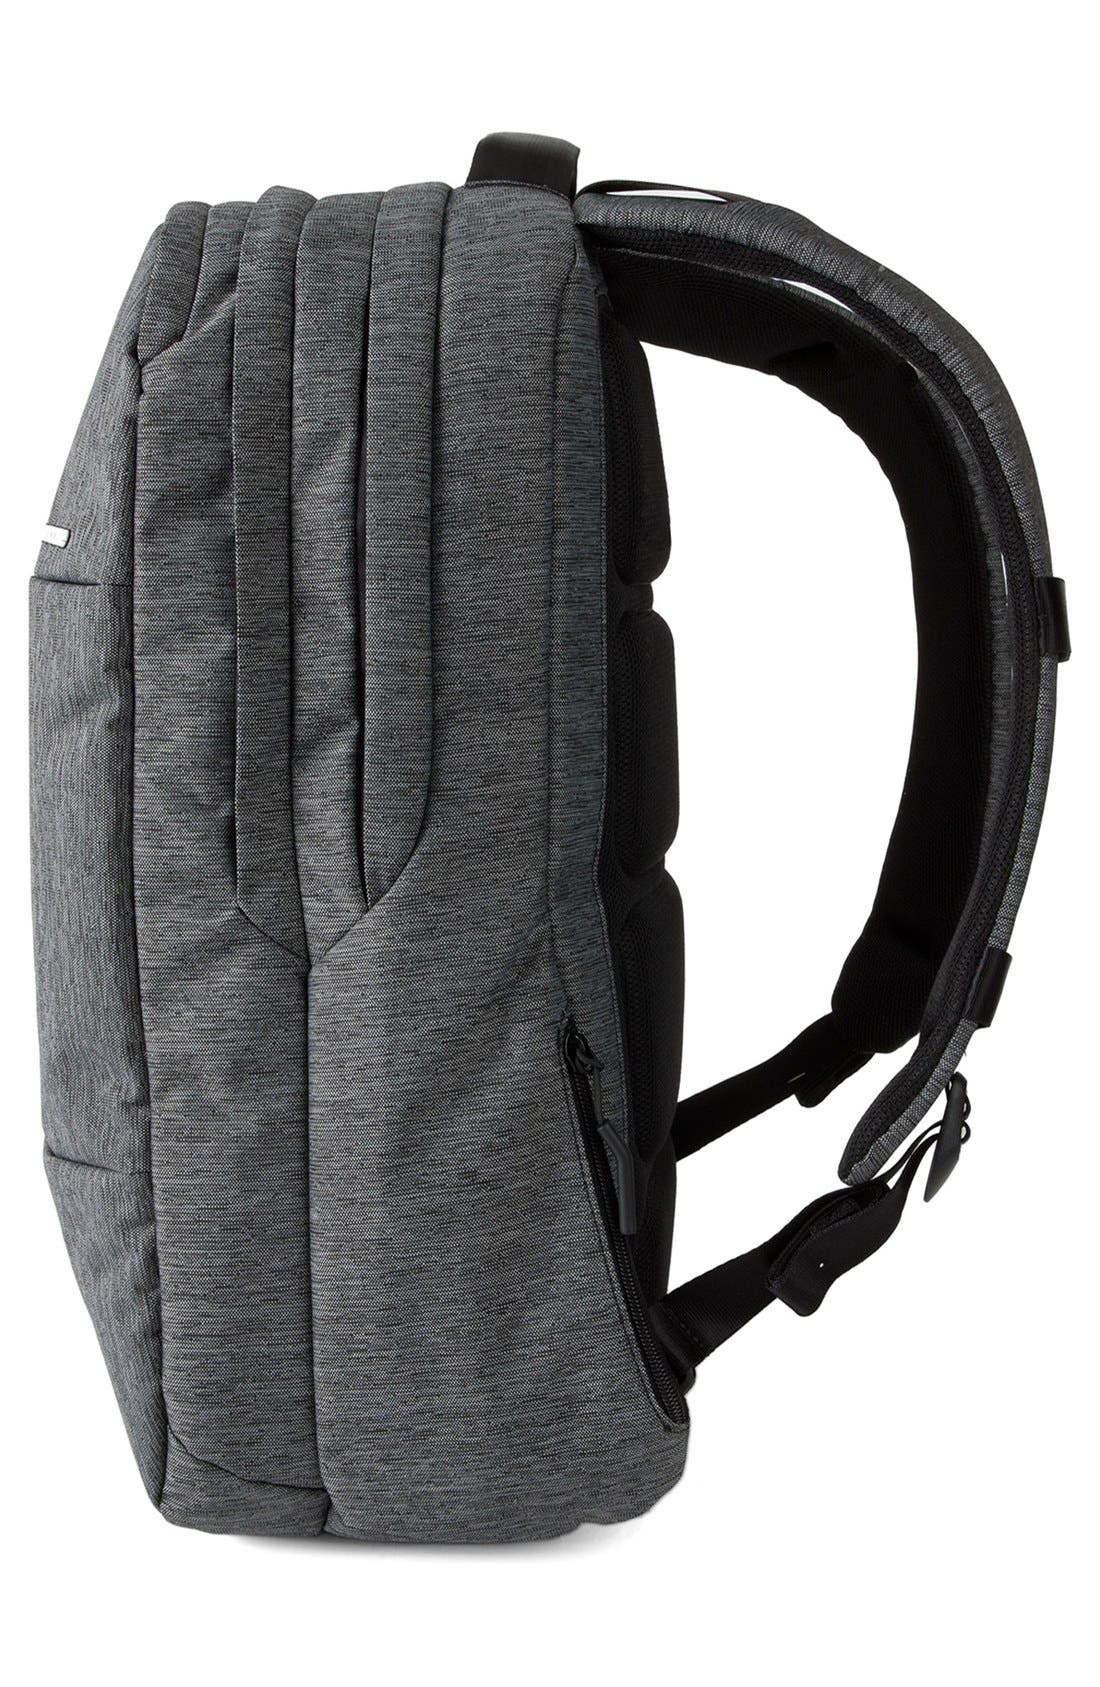 City Collection Backpack,                             Alternate thumbnail 4, color,                             HEATHER BLACK/ GUNMETAL GREY